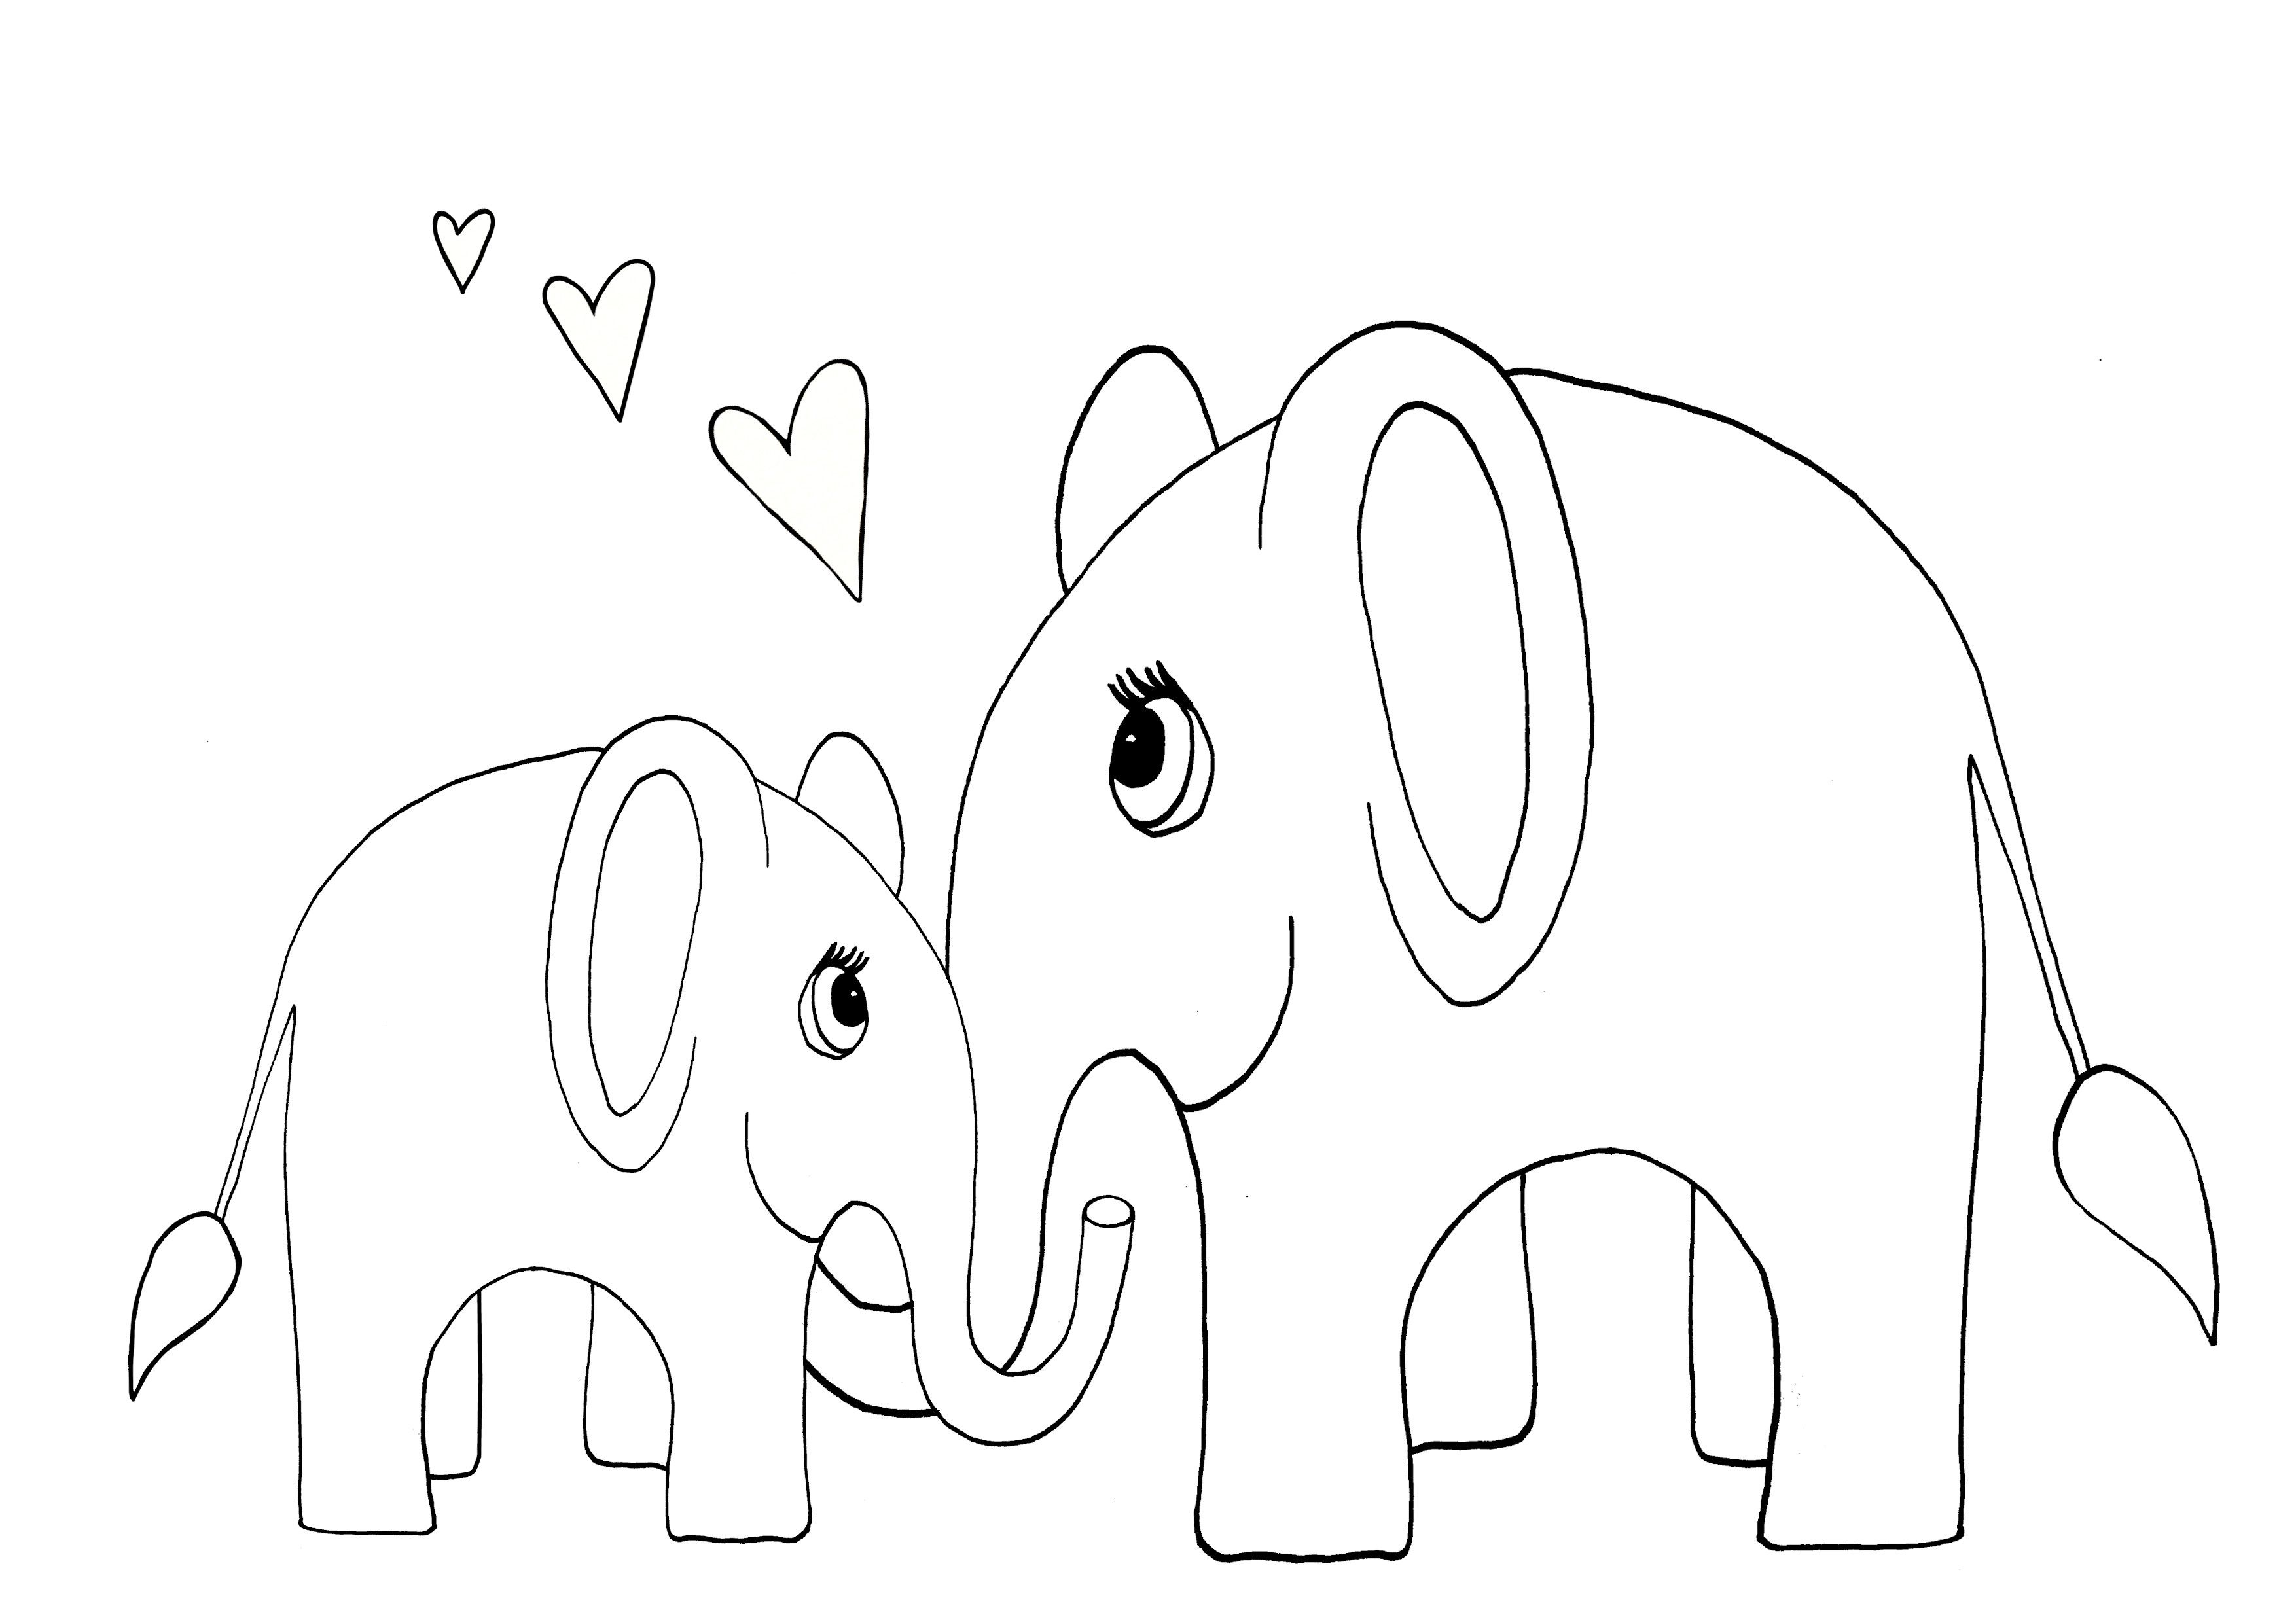 Mommy And Baby Elephant Coloring Page Elephant Coloring Page Kids School Supplies Homeschool Preschool Activities